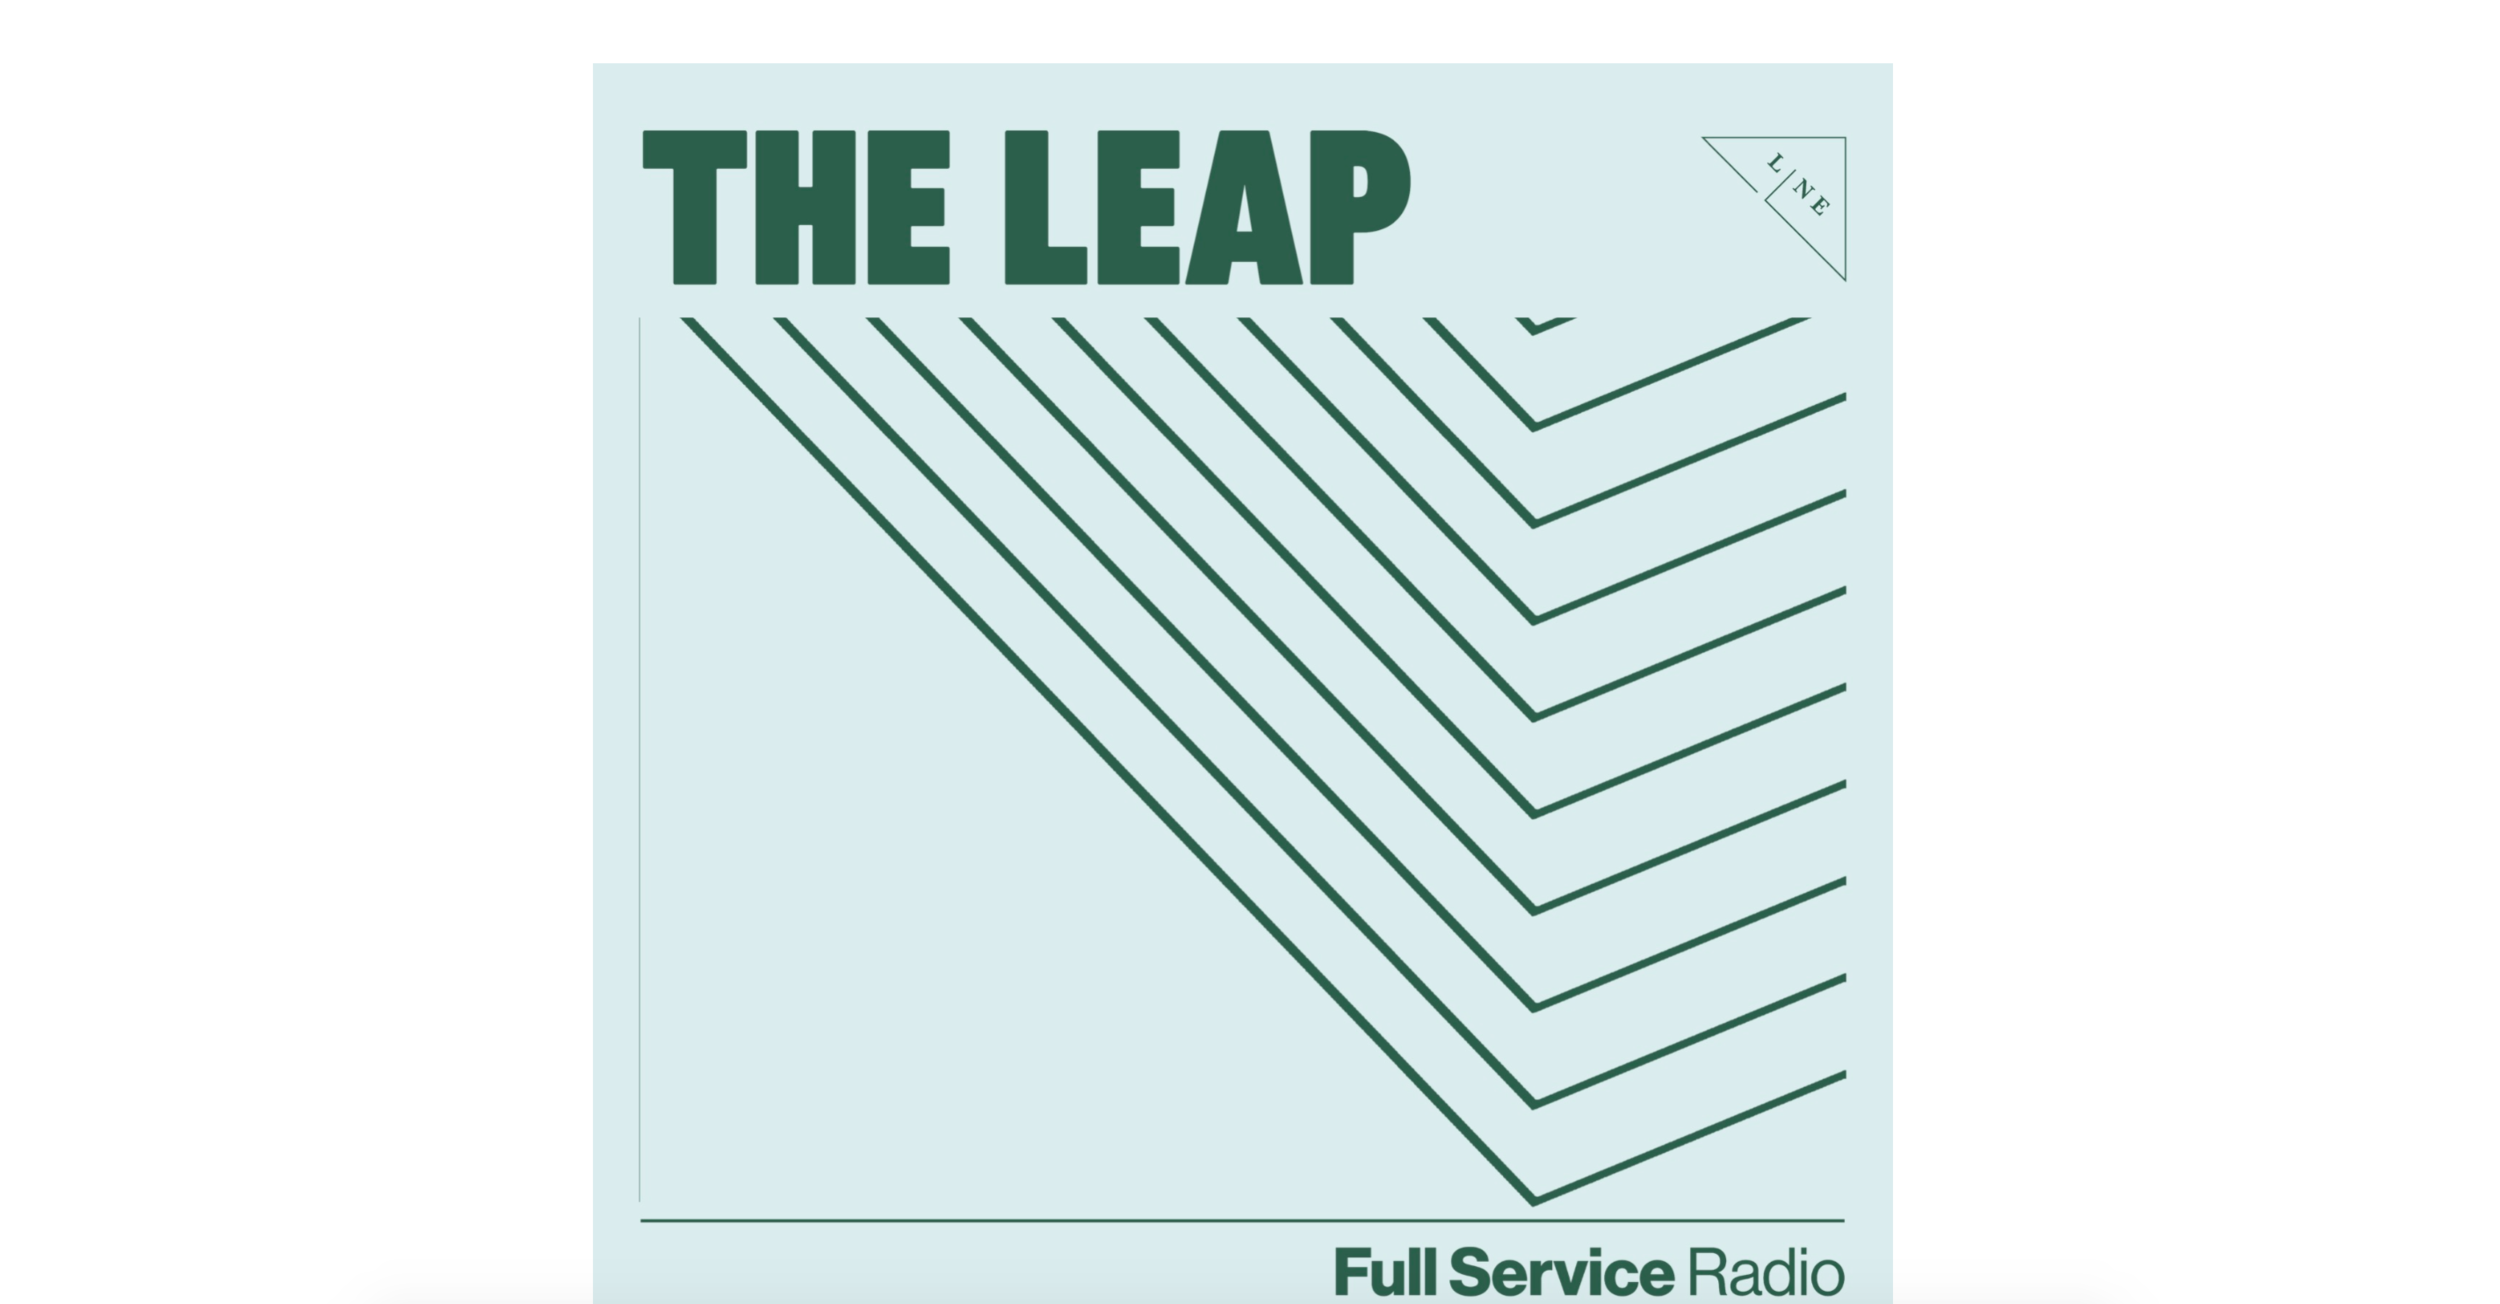 The Leap at Full Service Radio - January 2018